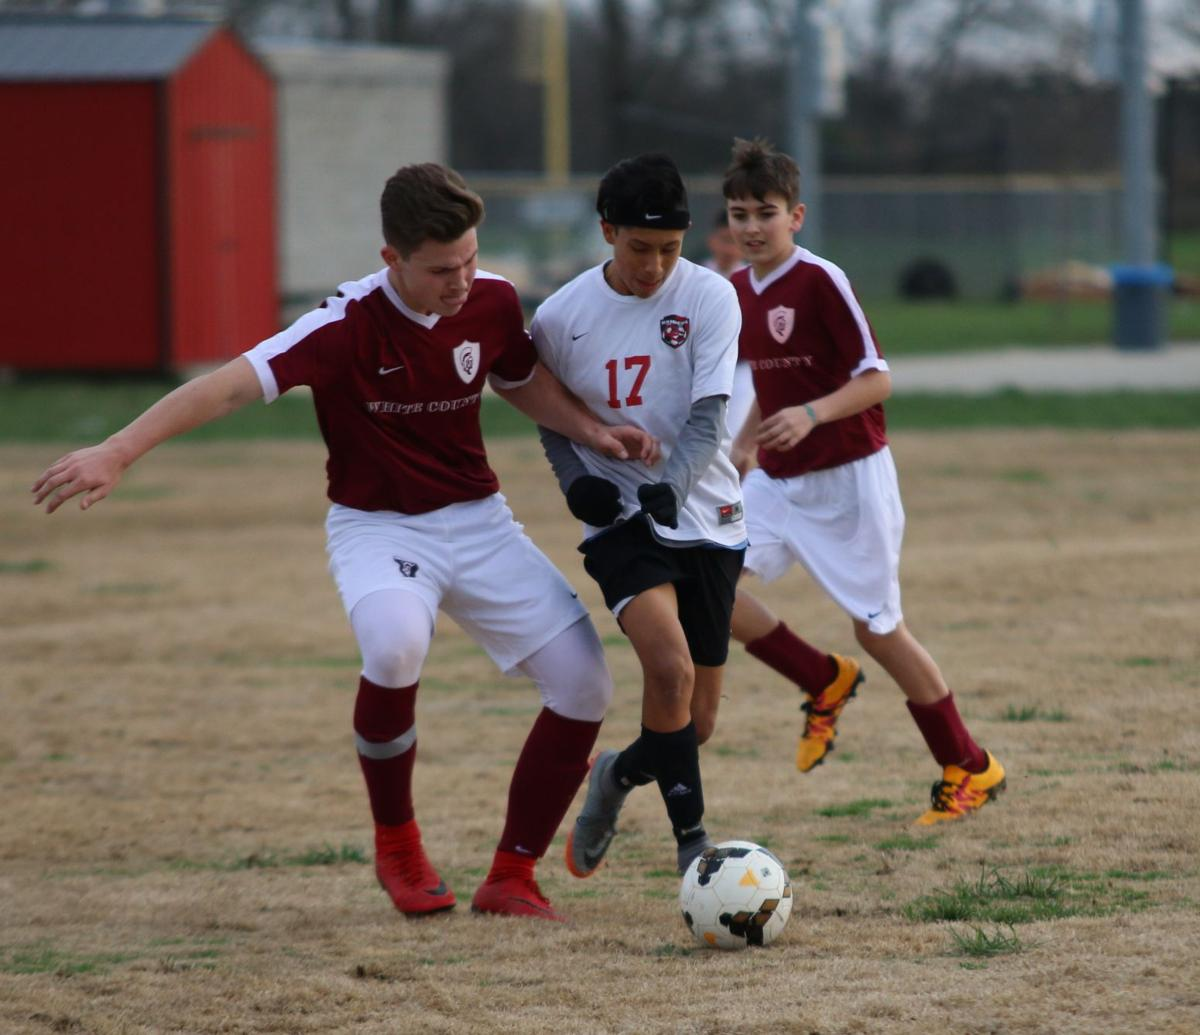 TUESDAY SPORTS ROUNDUP: Coffee Middle soccer wins debut under Ryan Wood; Westwood baseball wins season opener